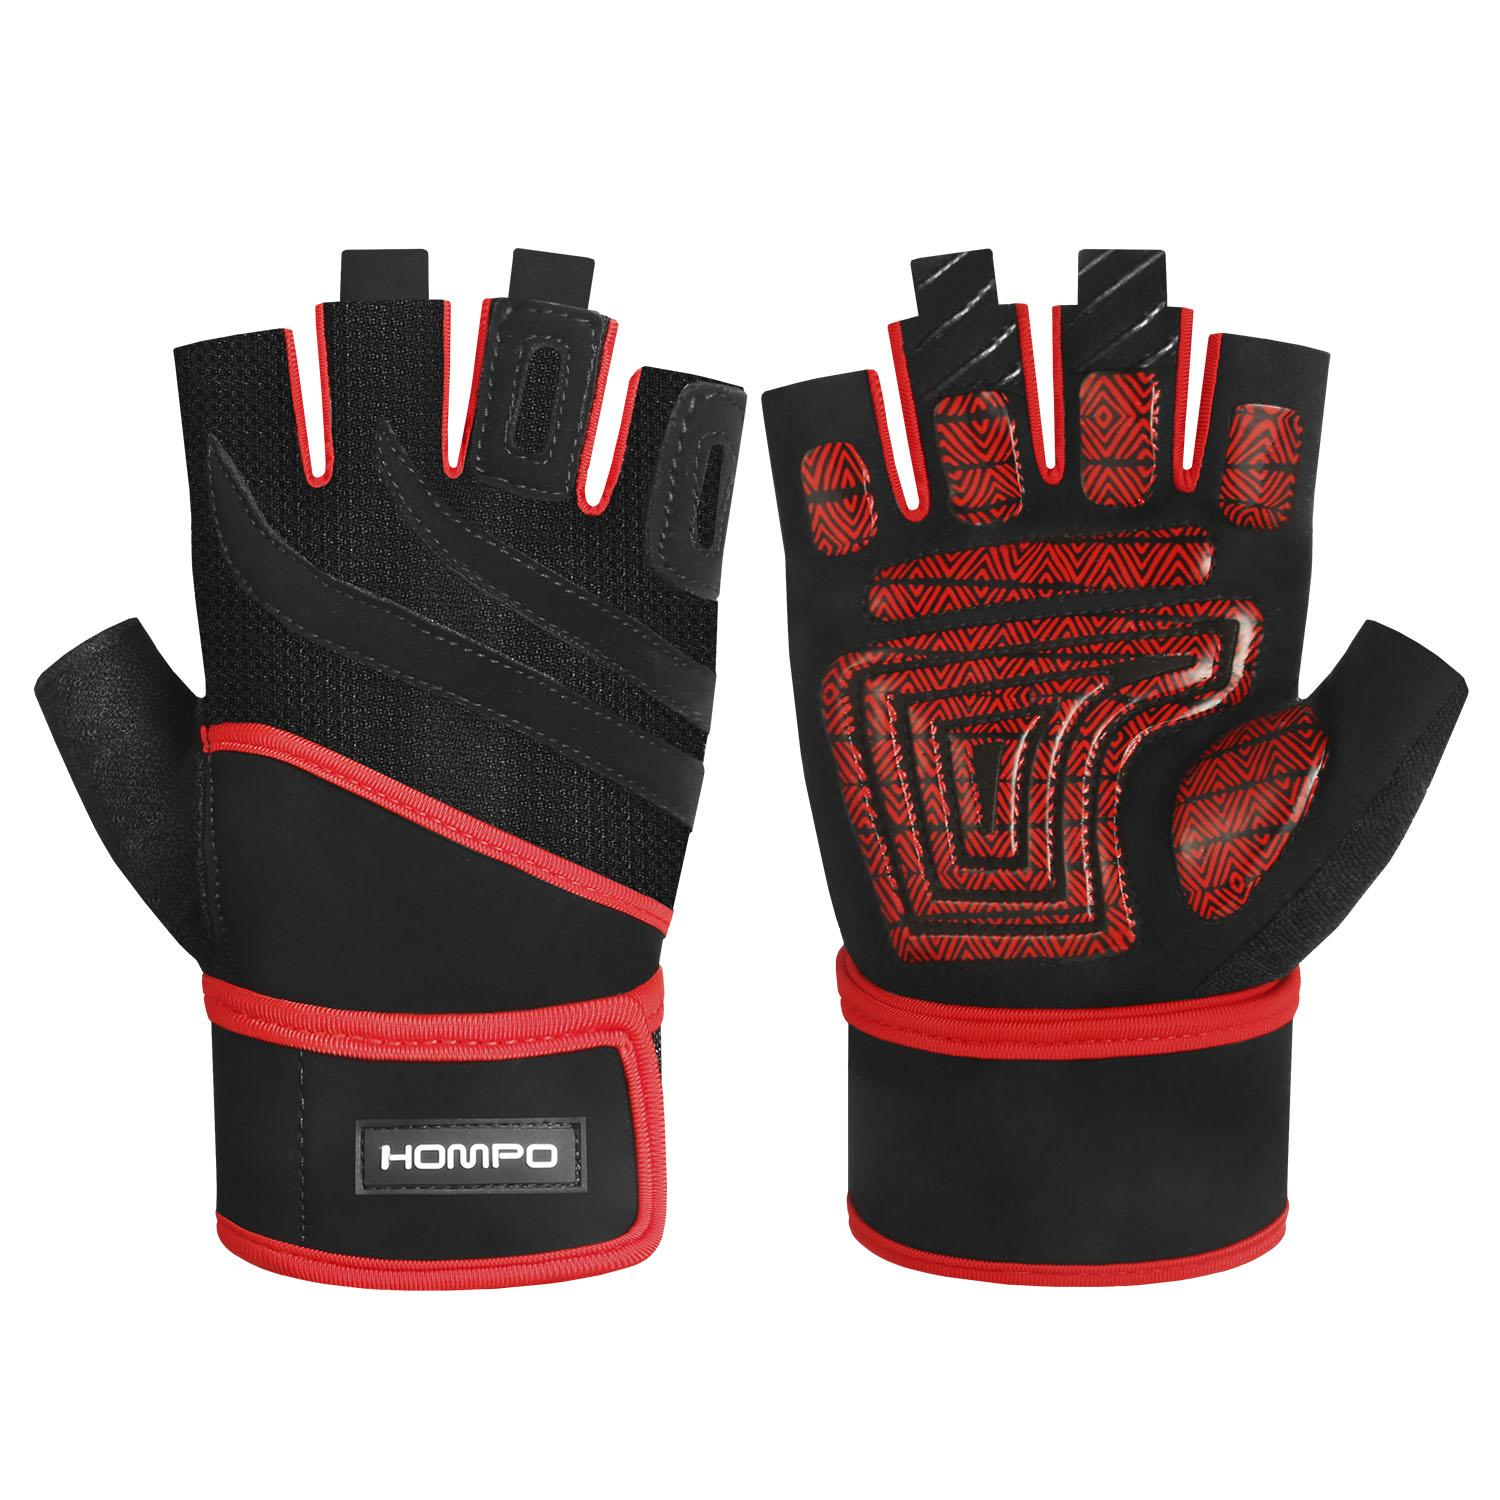 Hompo Weight Lifting Gloves Workout Gloves Fitness Gloves With Wrist Wraps Support, Gym Gloves For Exercise,powerlifting, Cross Training, Workout Weight Lifting Half Finger Gloves For Men & Women (1 Pair) By Wripples.